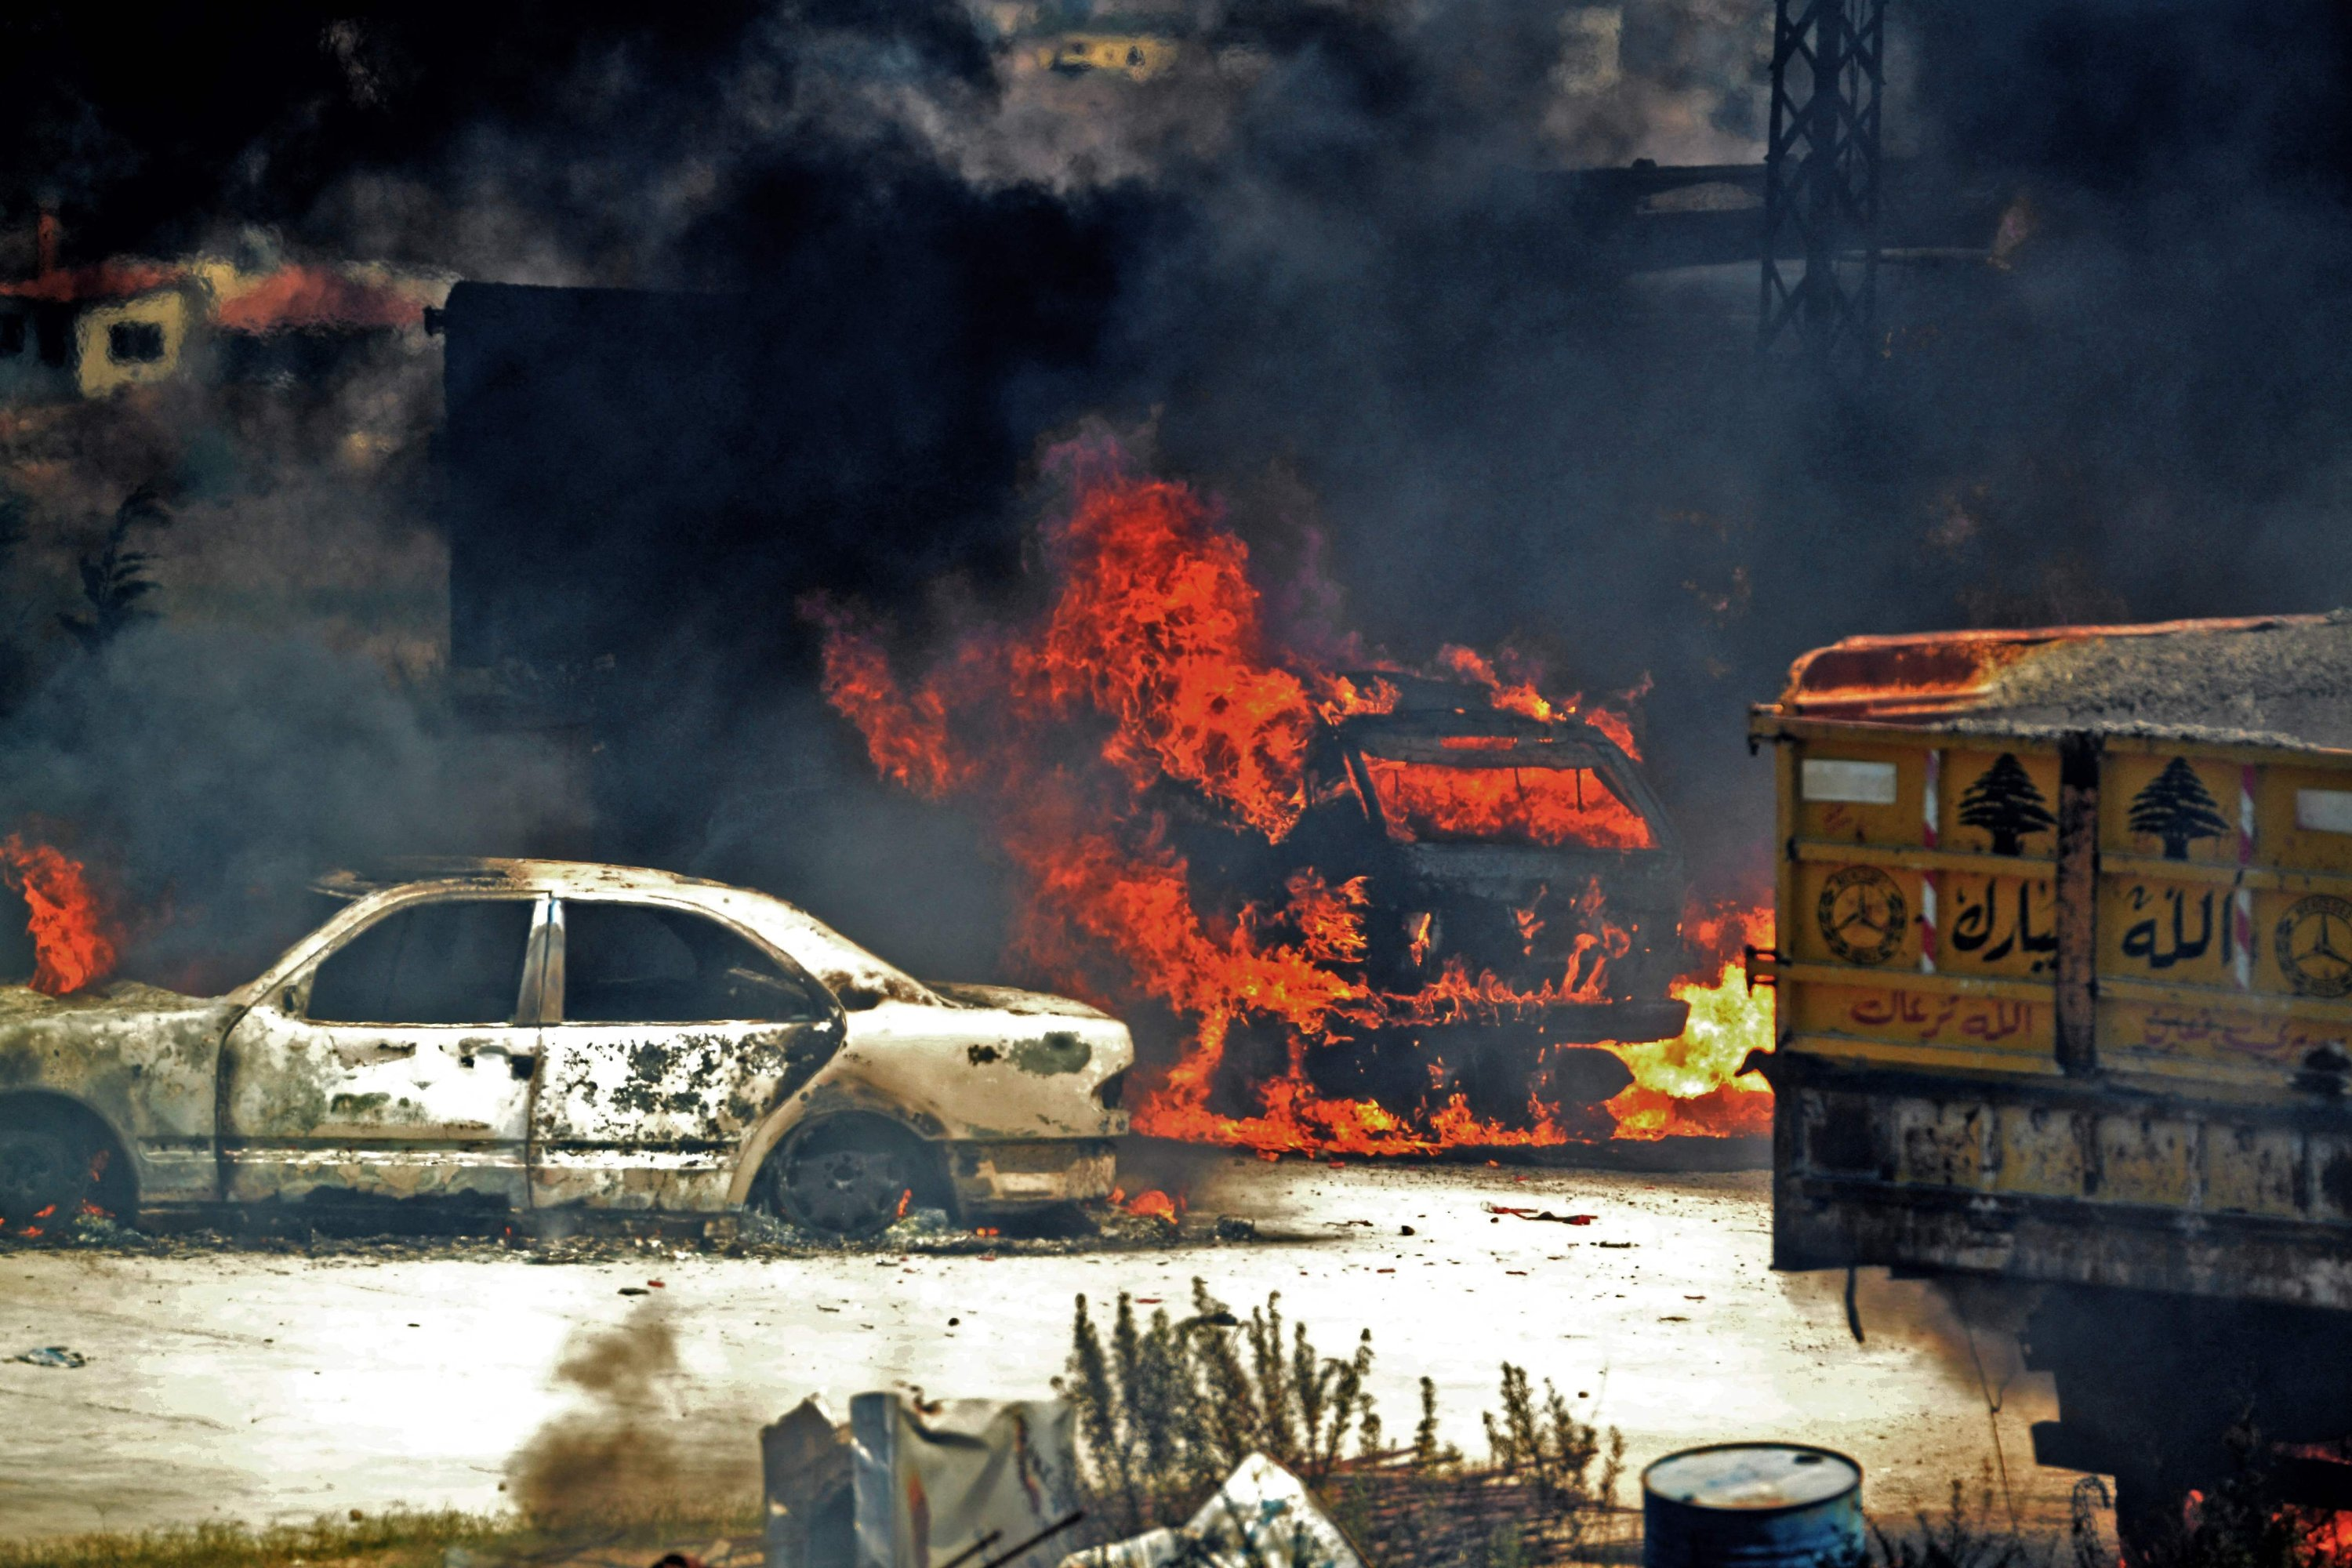 Vehicles burn outside the reported home of the lot owner, where the exploded fuel tank was placed, in the village of Tlel in Lebanon's northern region of Akkar, Aug. 15, 2021. (AFP Photo)